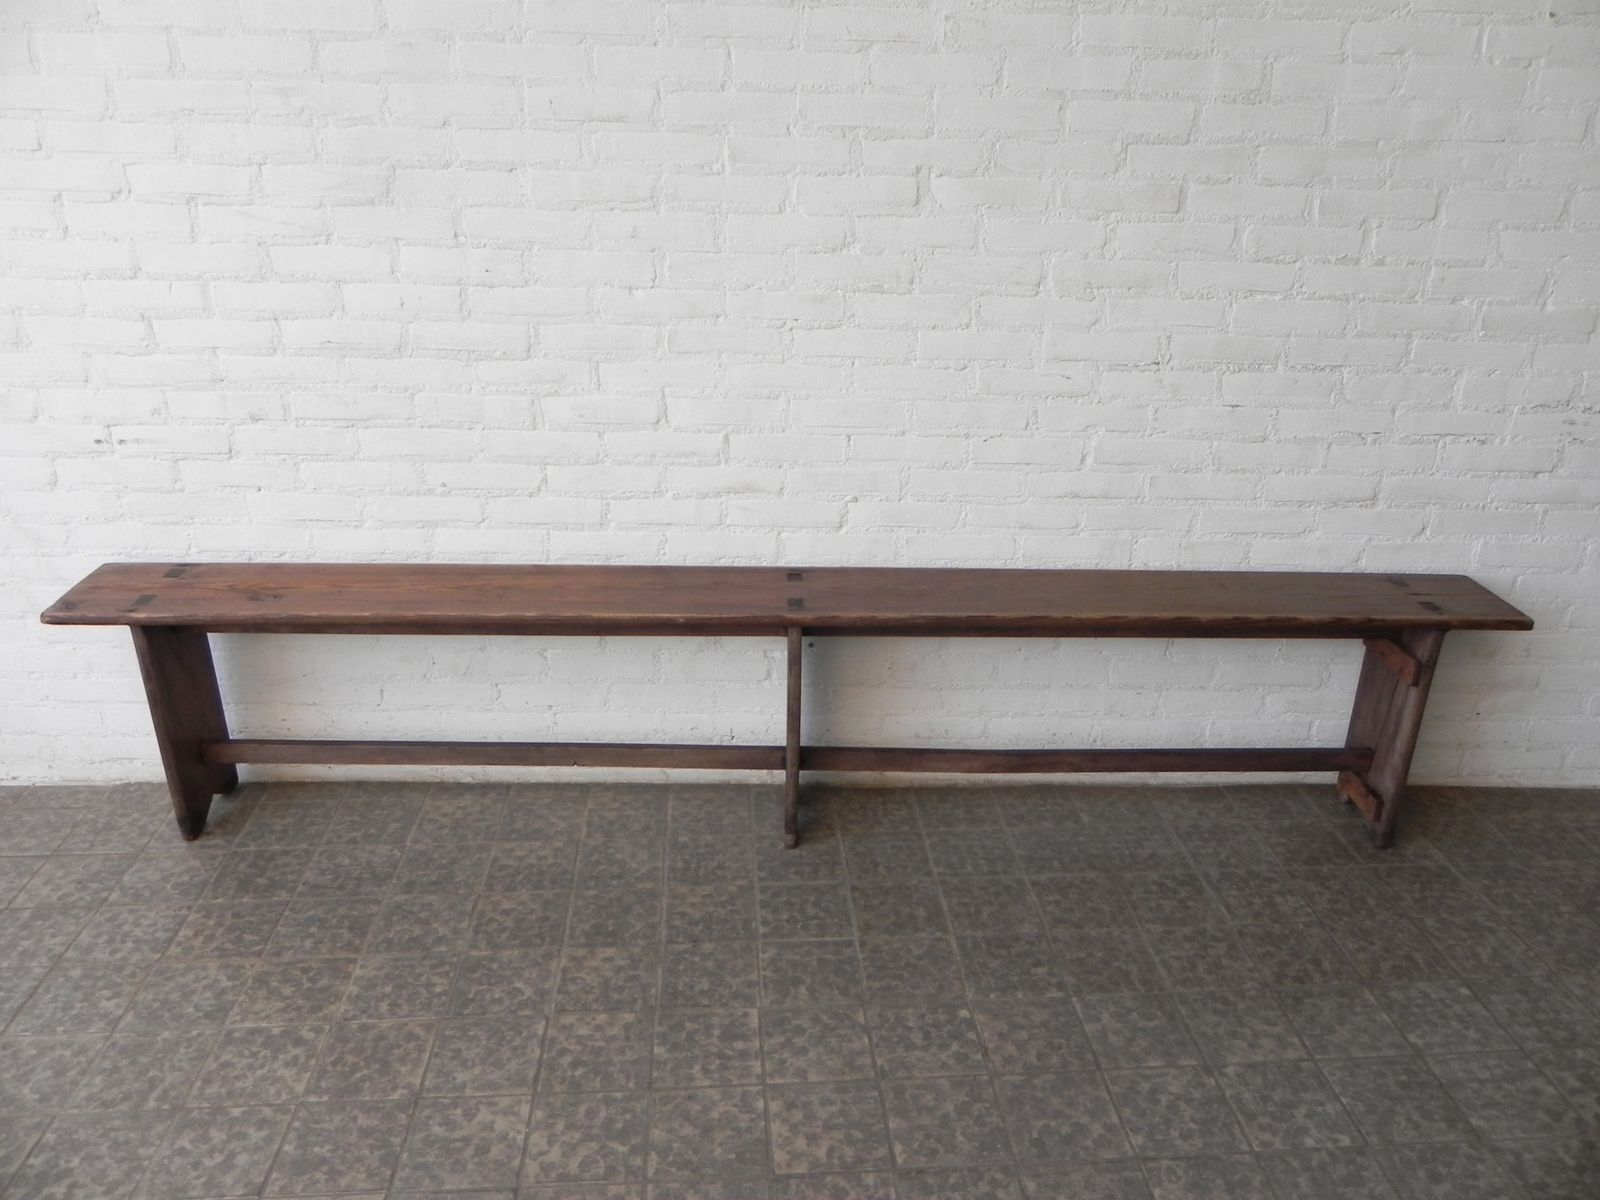 Long Wooden School Bench 1950s For Sale At Pamono